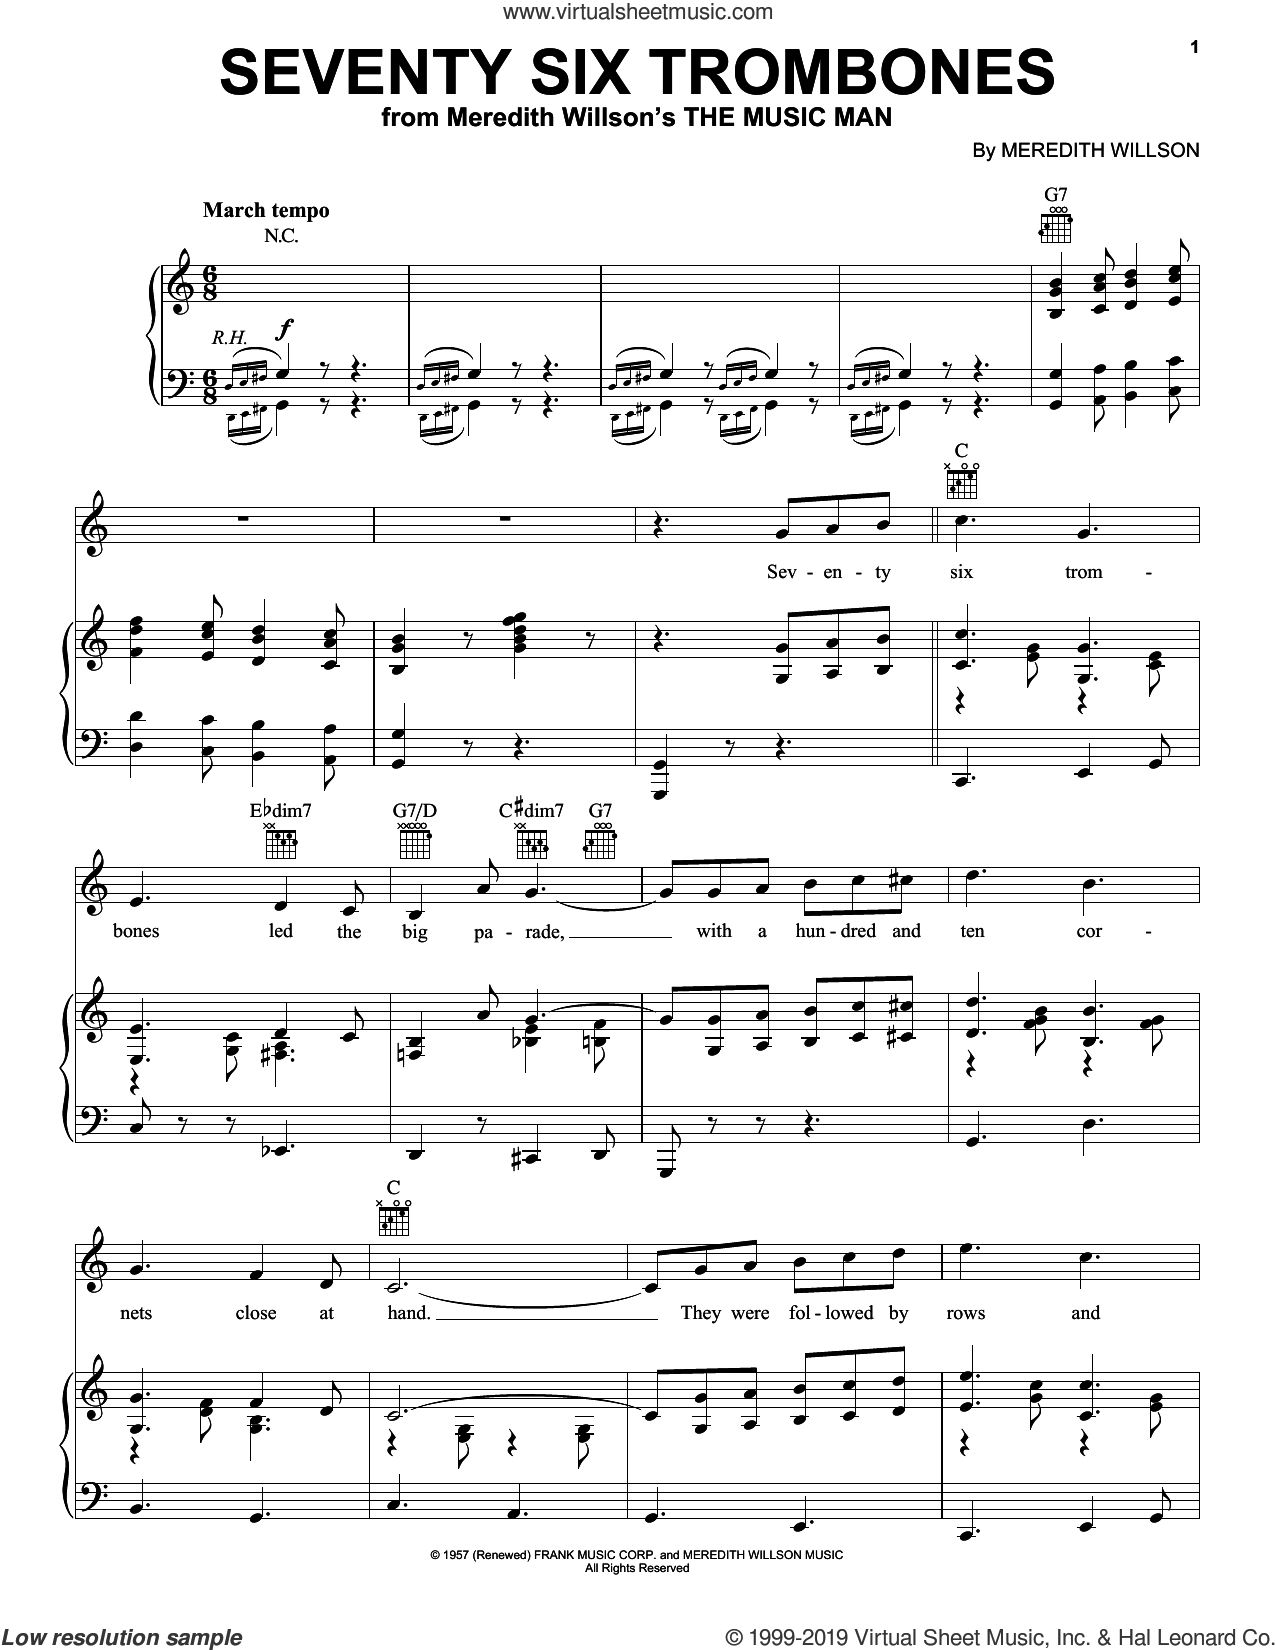 Seventy Six Trombones sheet music for voice, piano or guitar by Meredith Willson, intermediate skill level